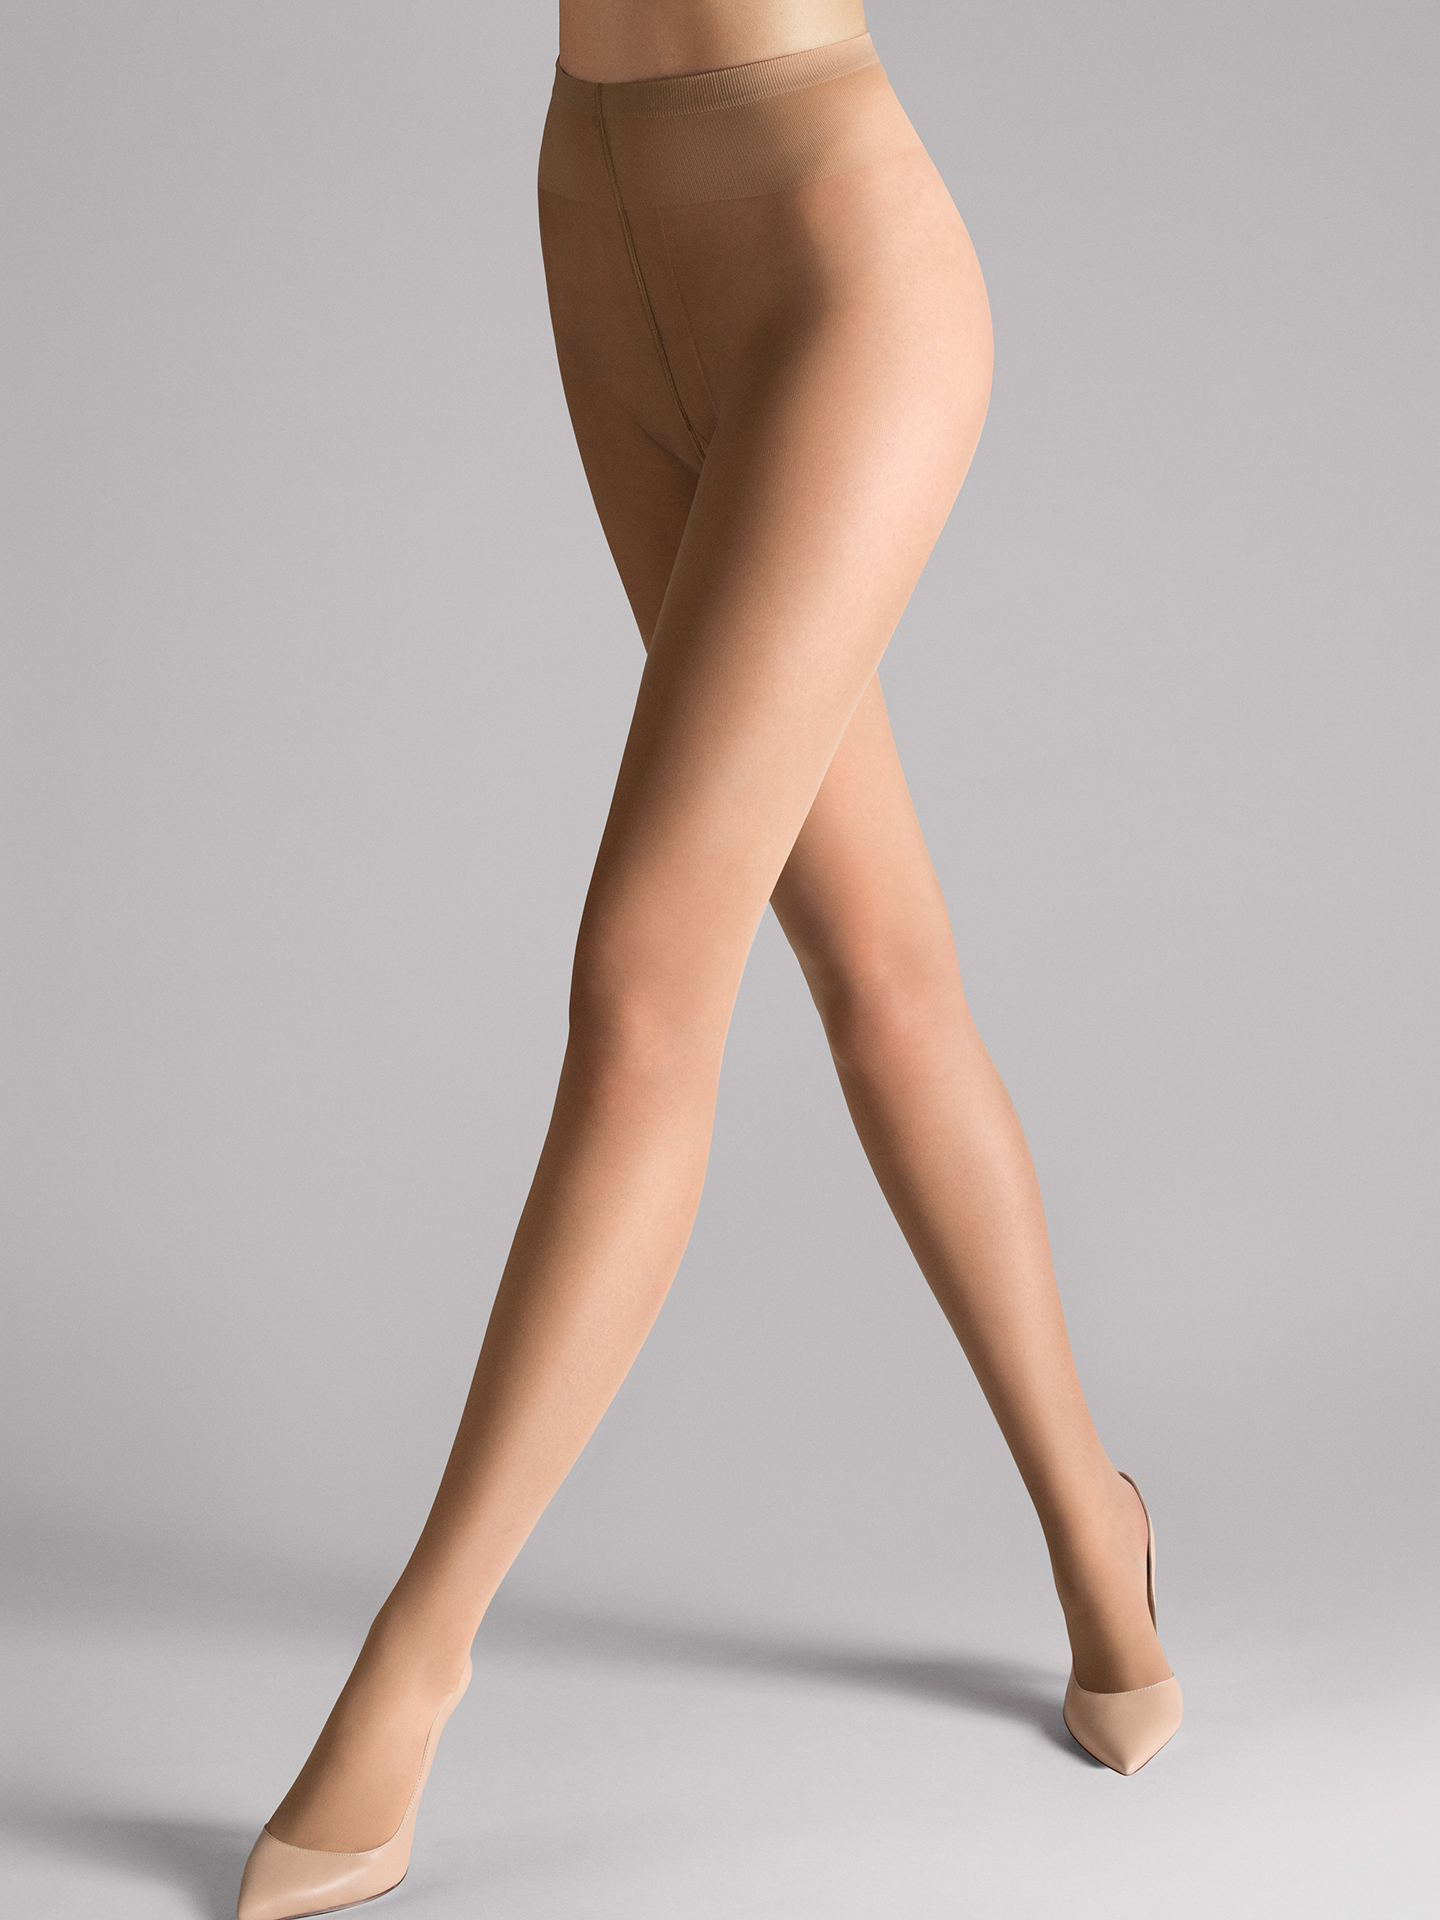 Wolford Apparel & Accessories > Clothing > Collant Individual 20 - 4365 - M